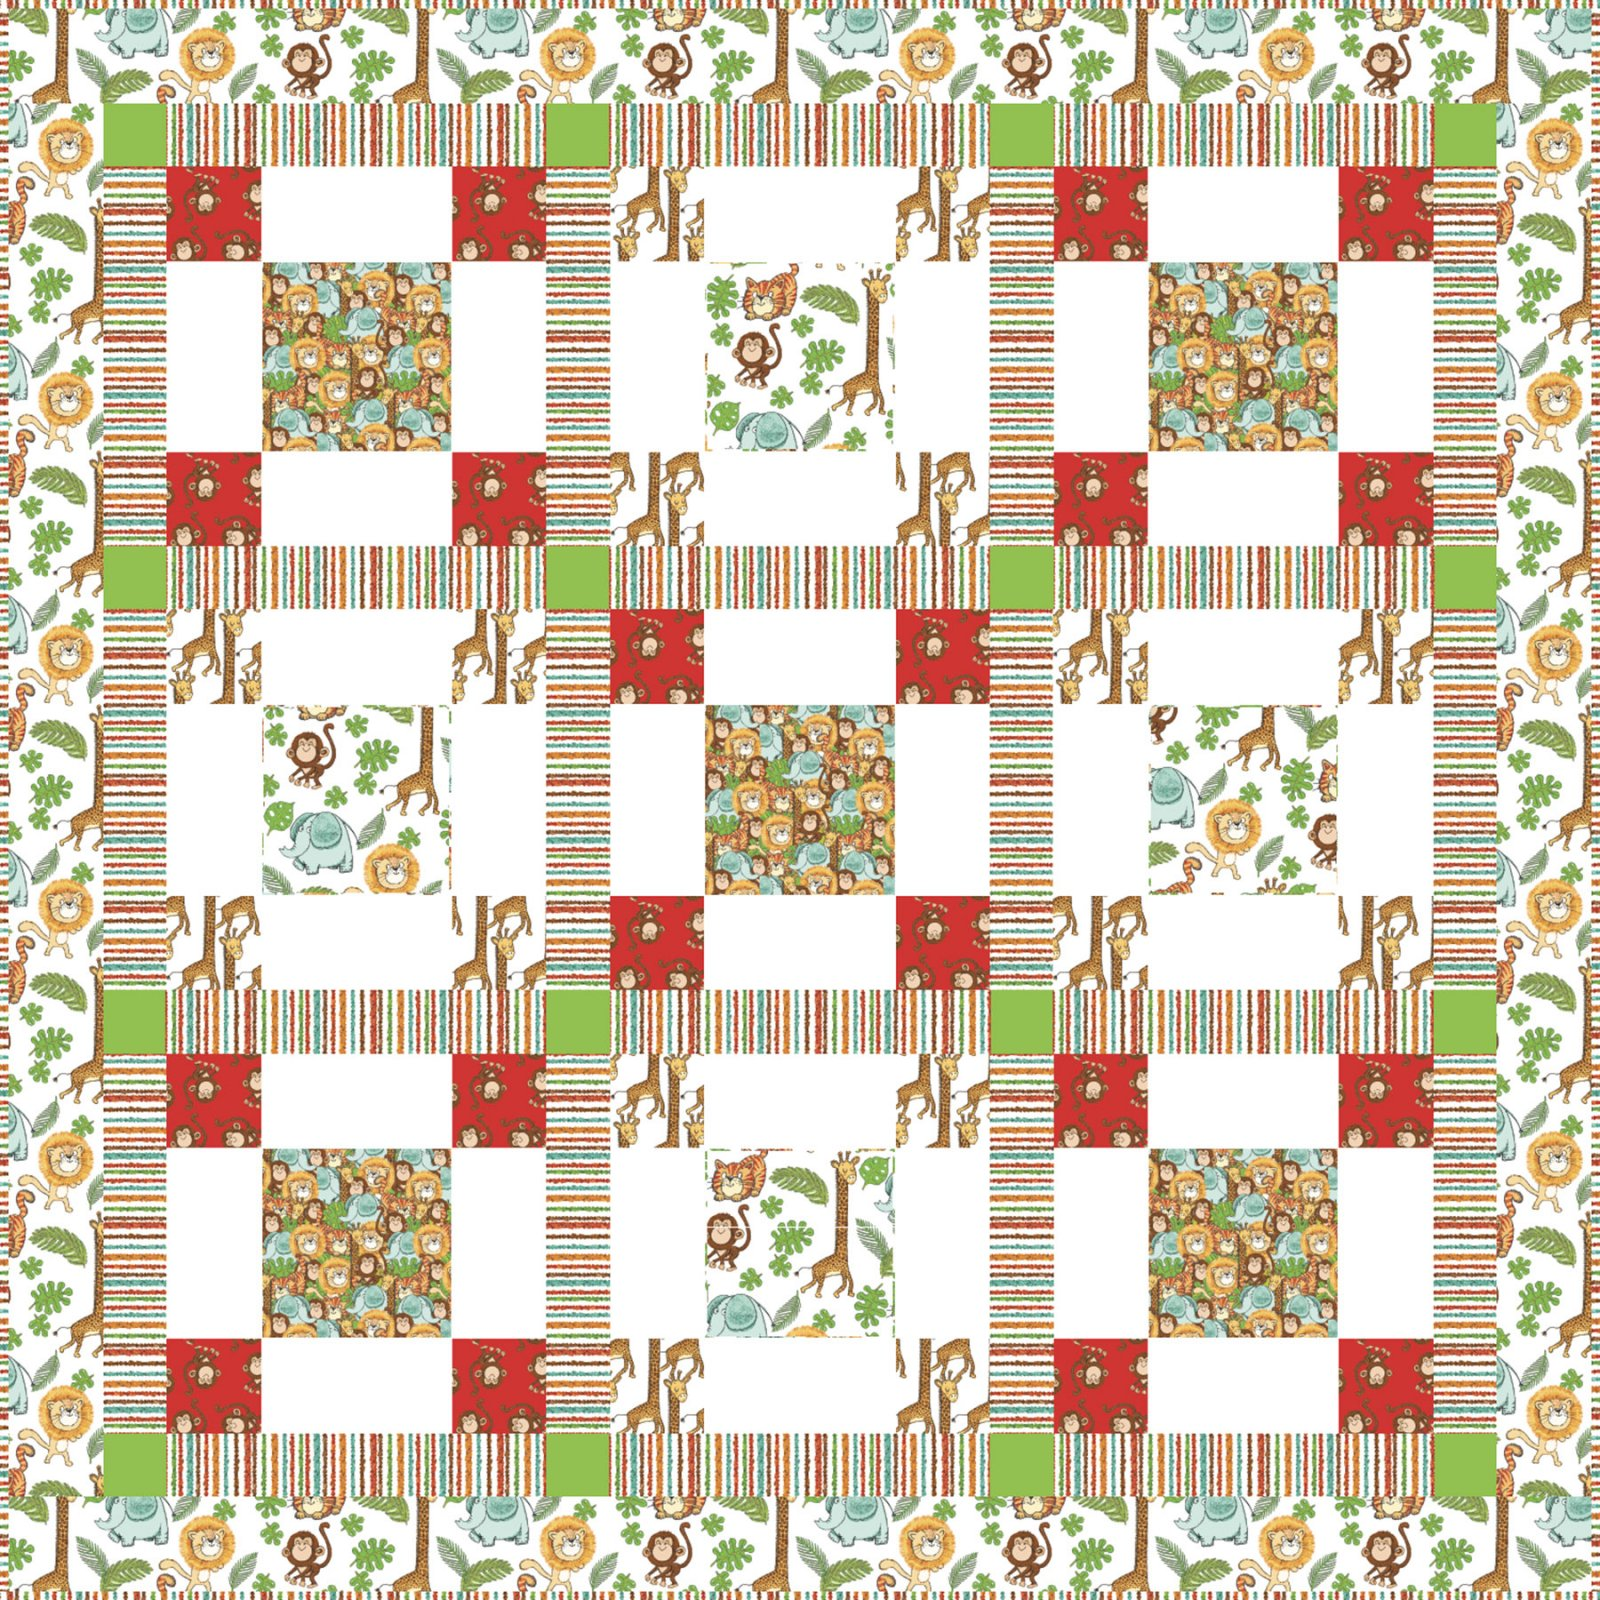 3 Wishes Fabric<br>Playful Cuties 4 Jungle Quilt